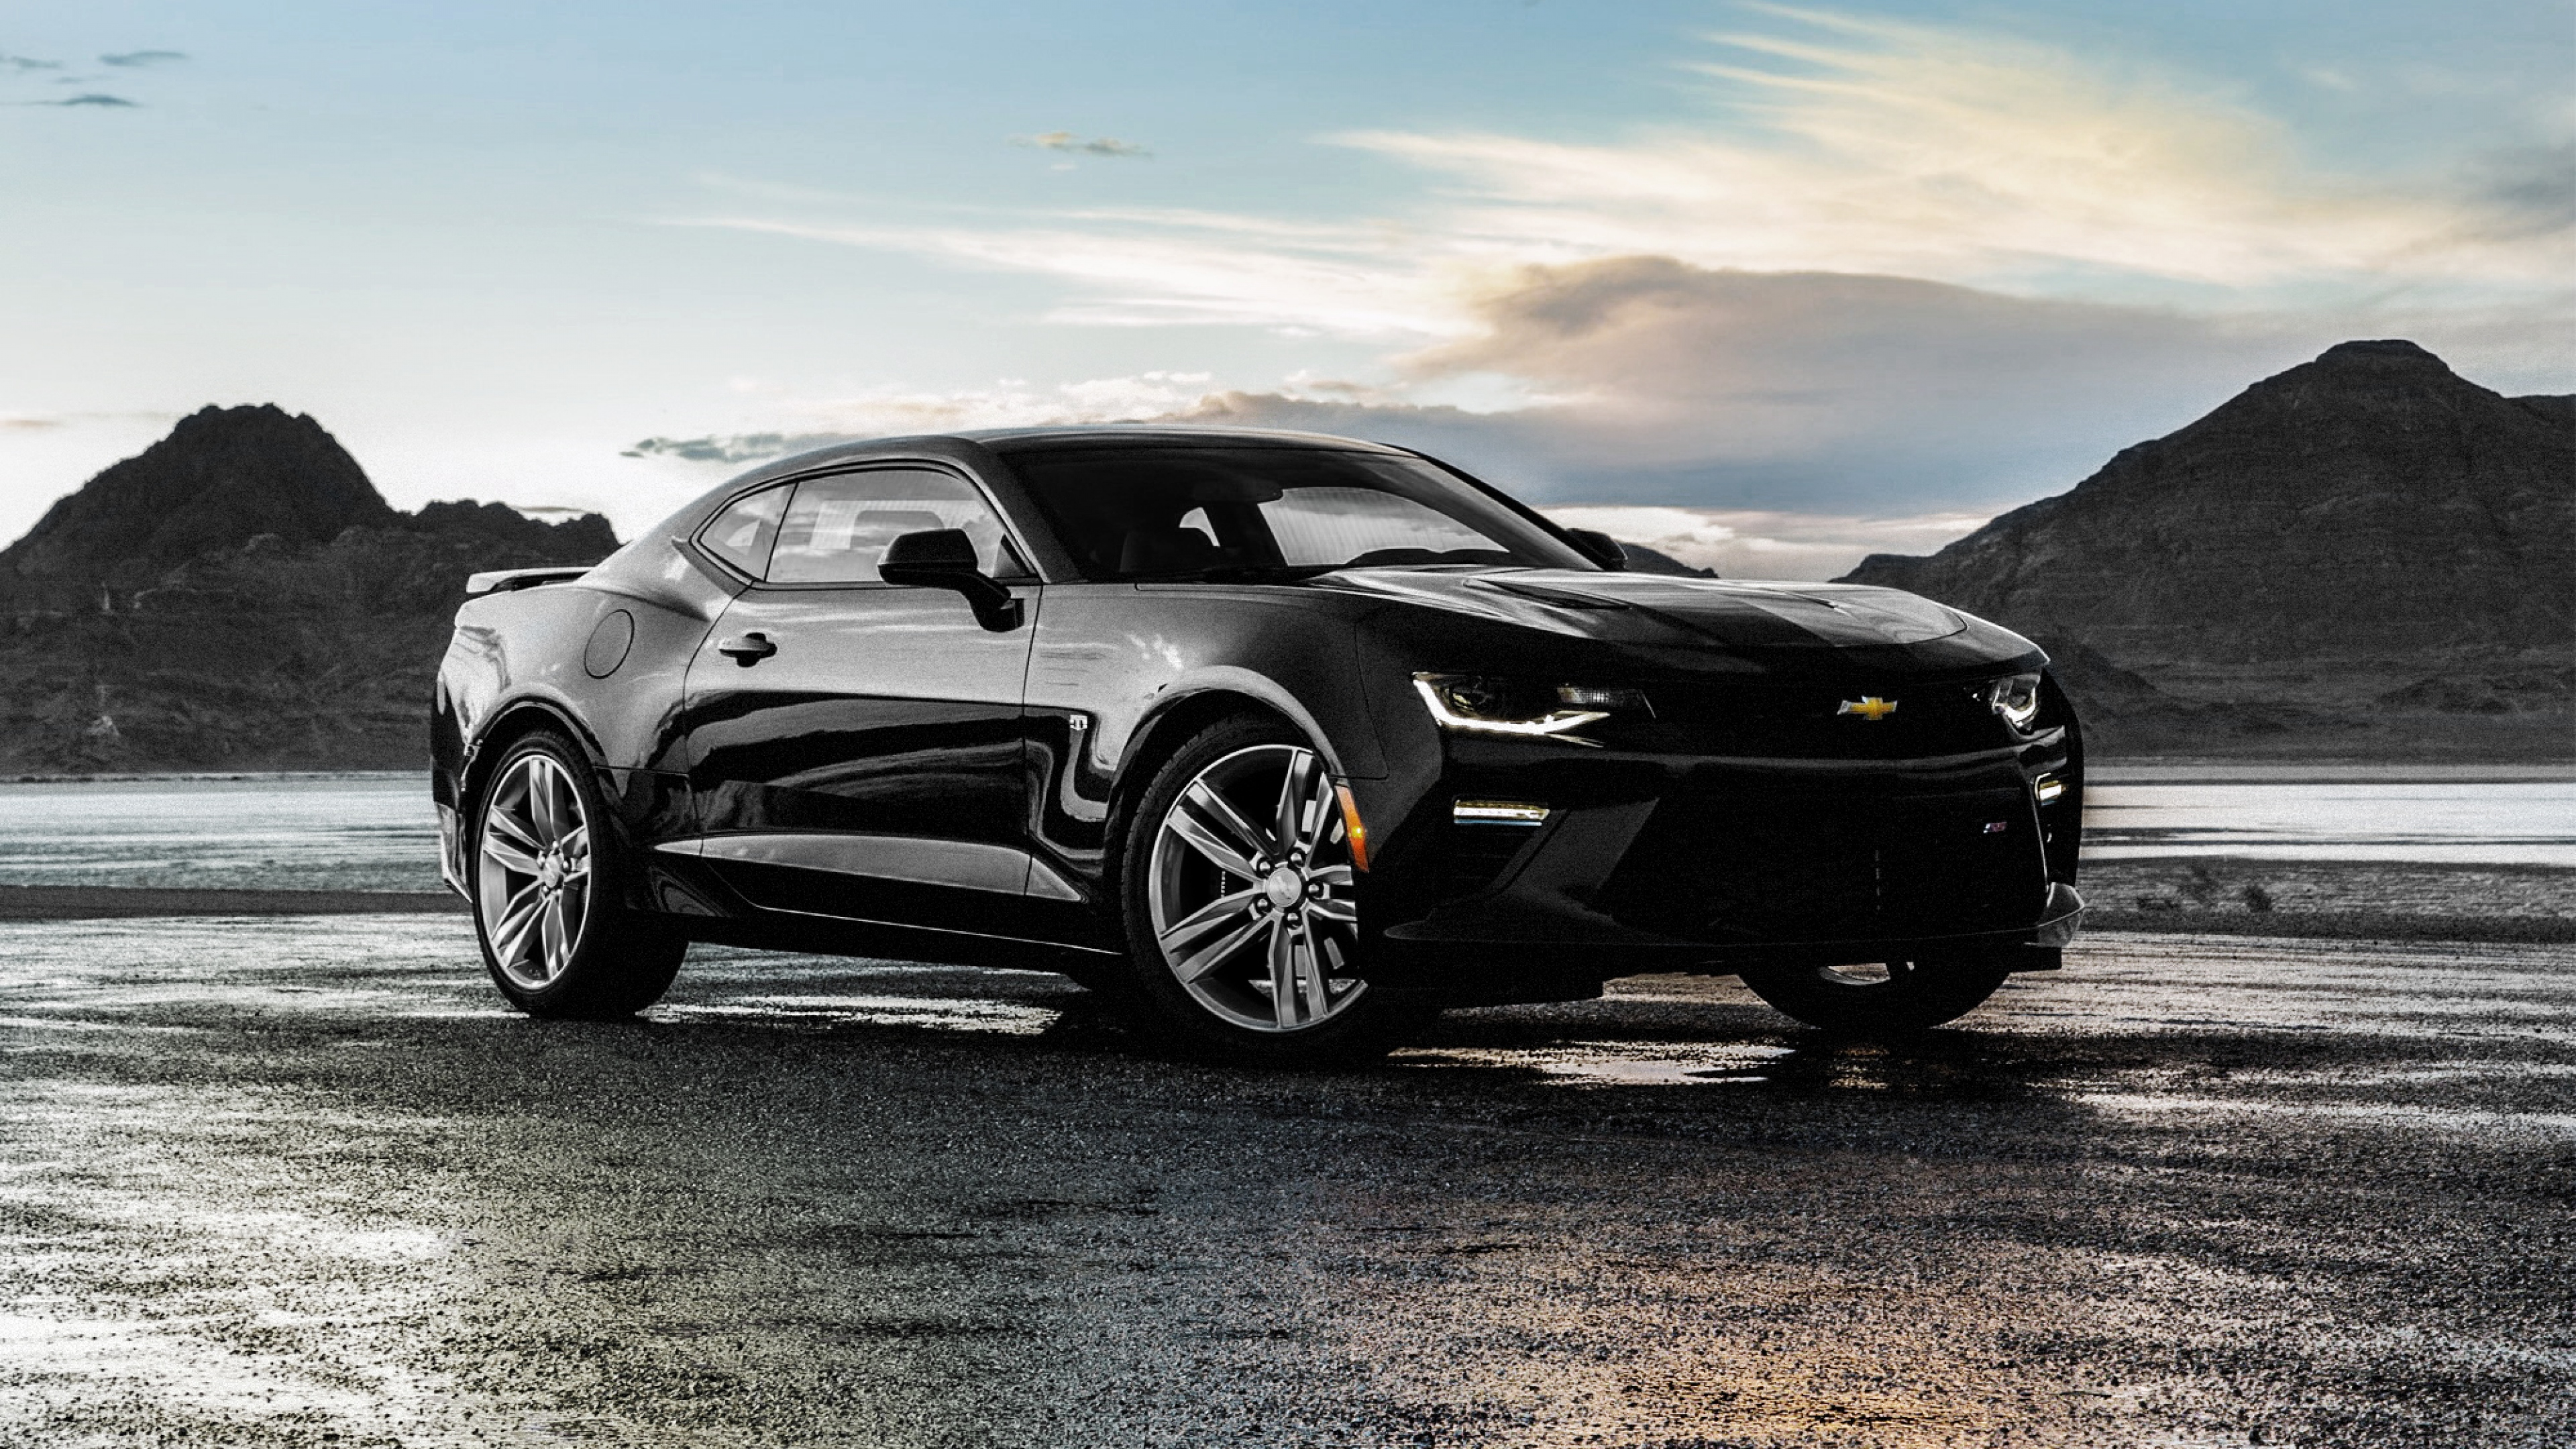 1280x1024 Chevrolet Camaro SS Black 1280x1024 Resolution